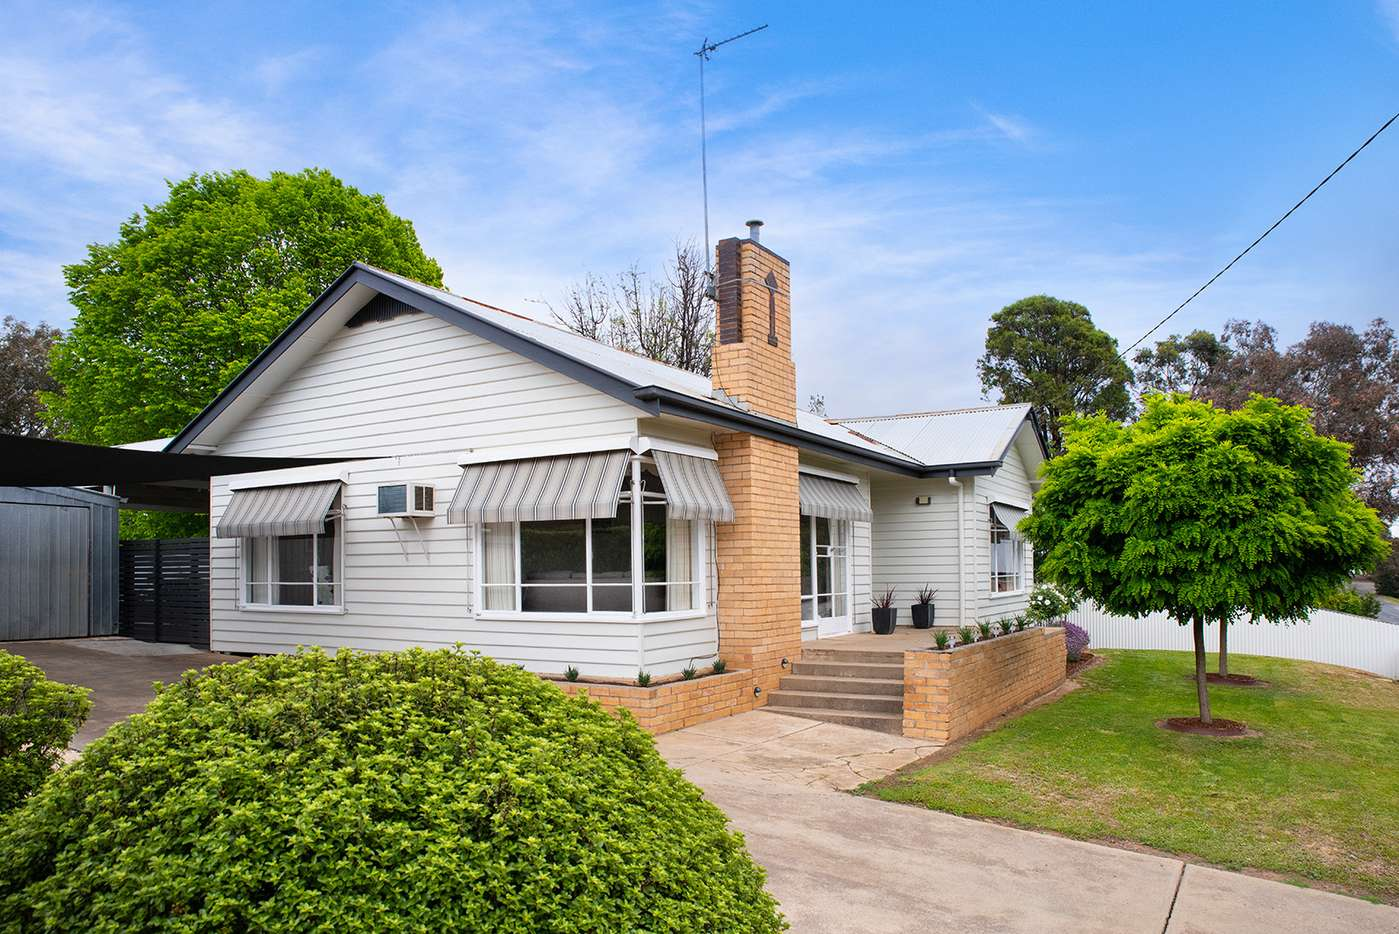 Main view of Homely house listing, 180 Duke Street, Castlemaine, VIC 3450